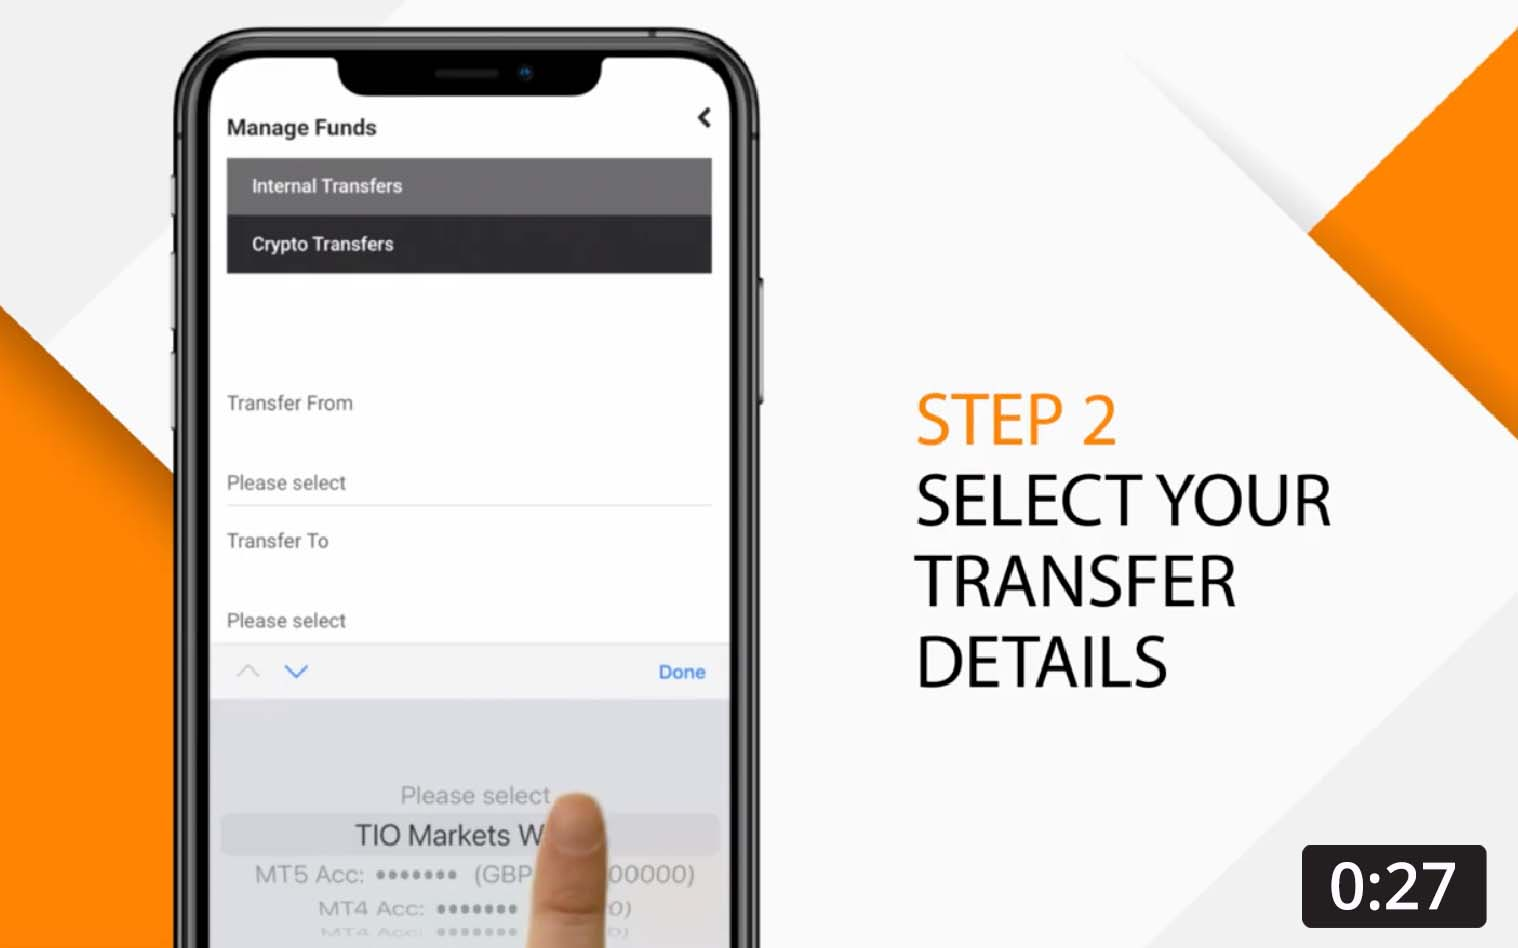 Transfer to your trading account